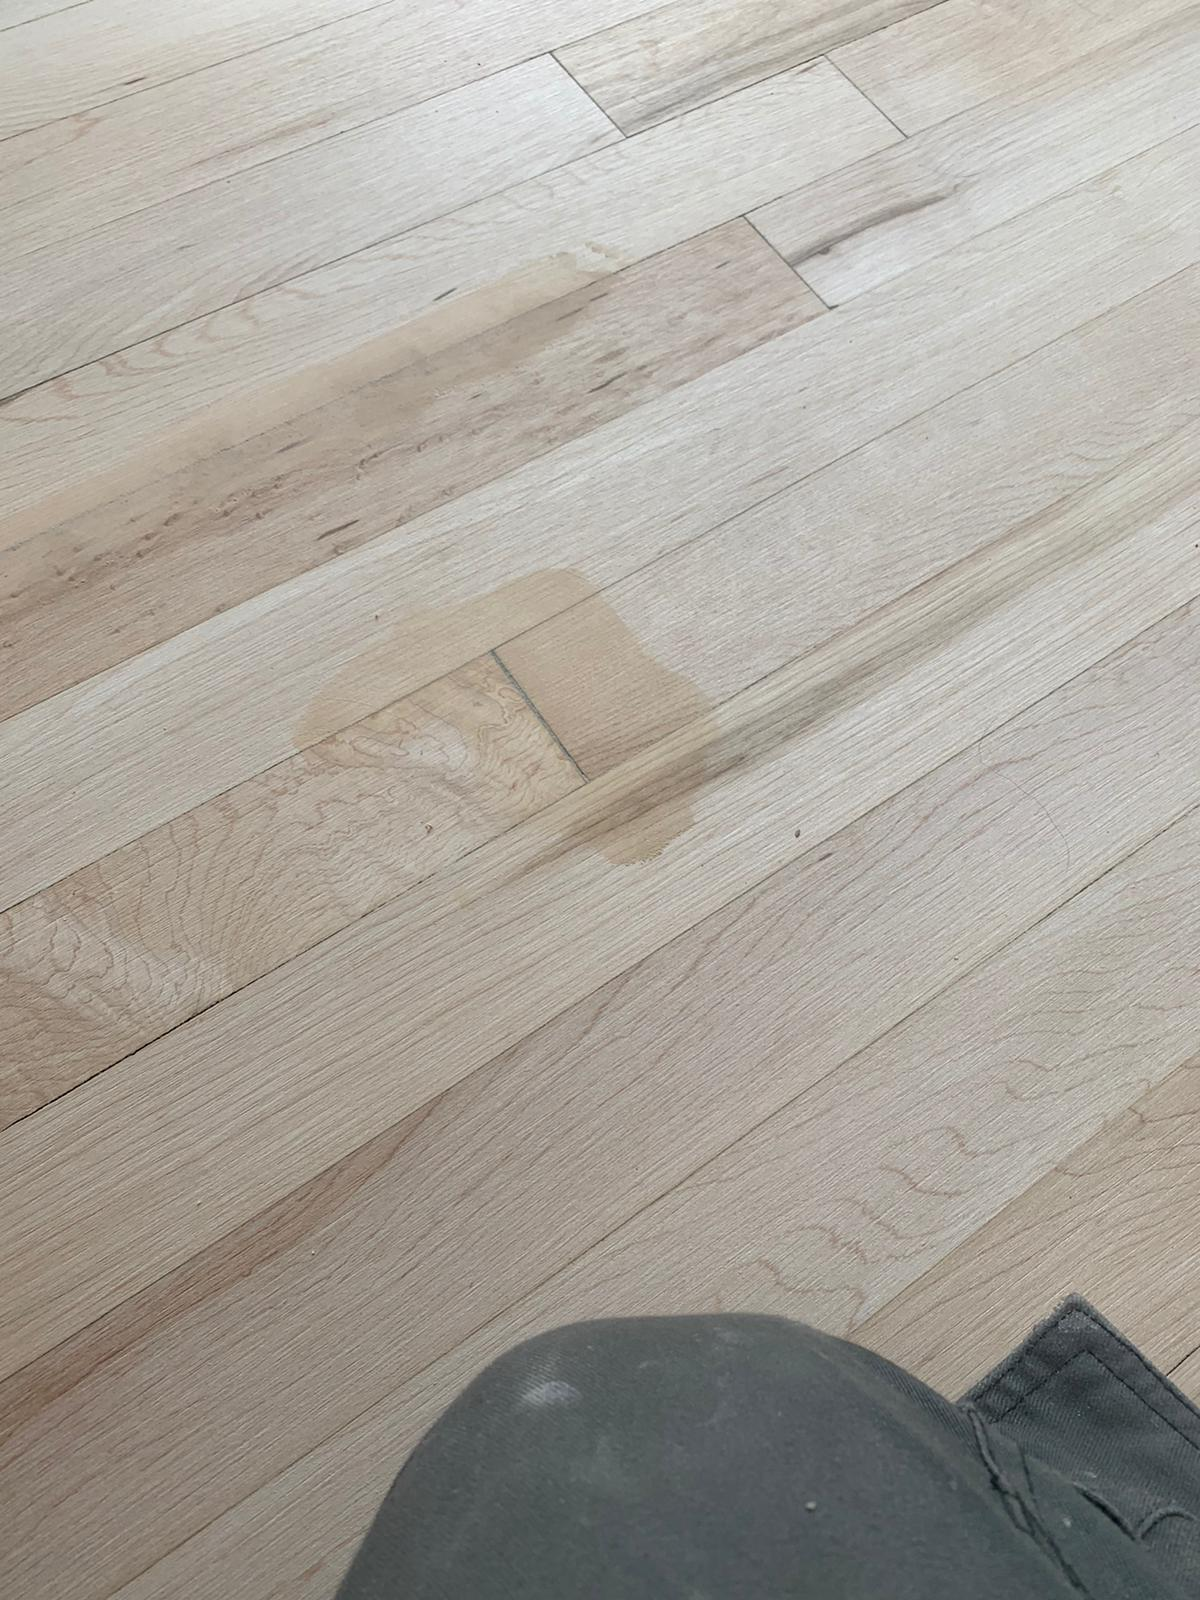 Sanding and Sealing Works 4